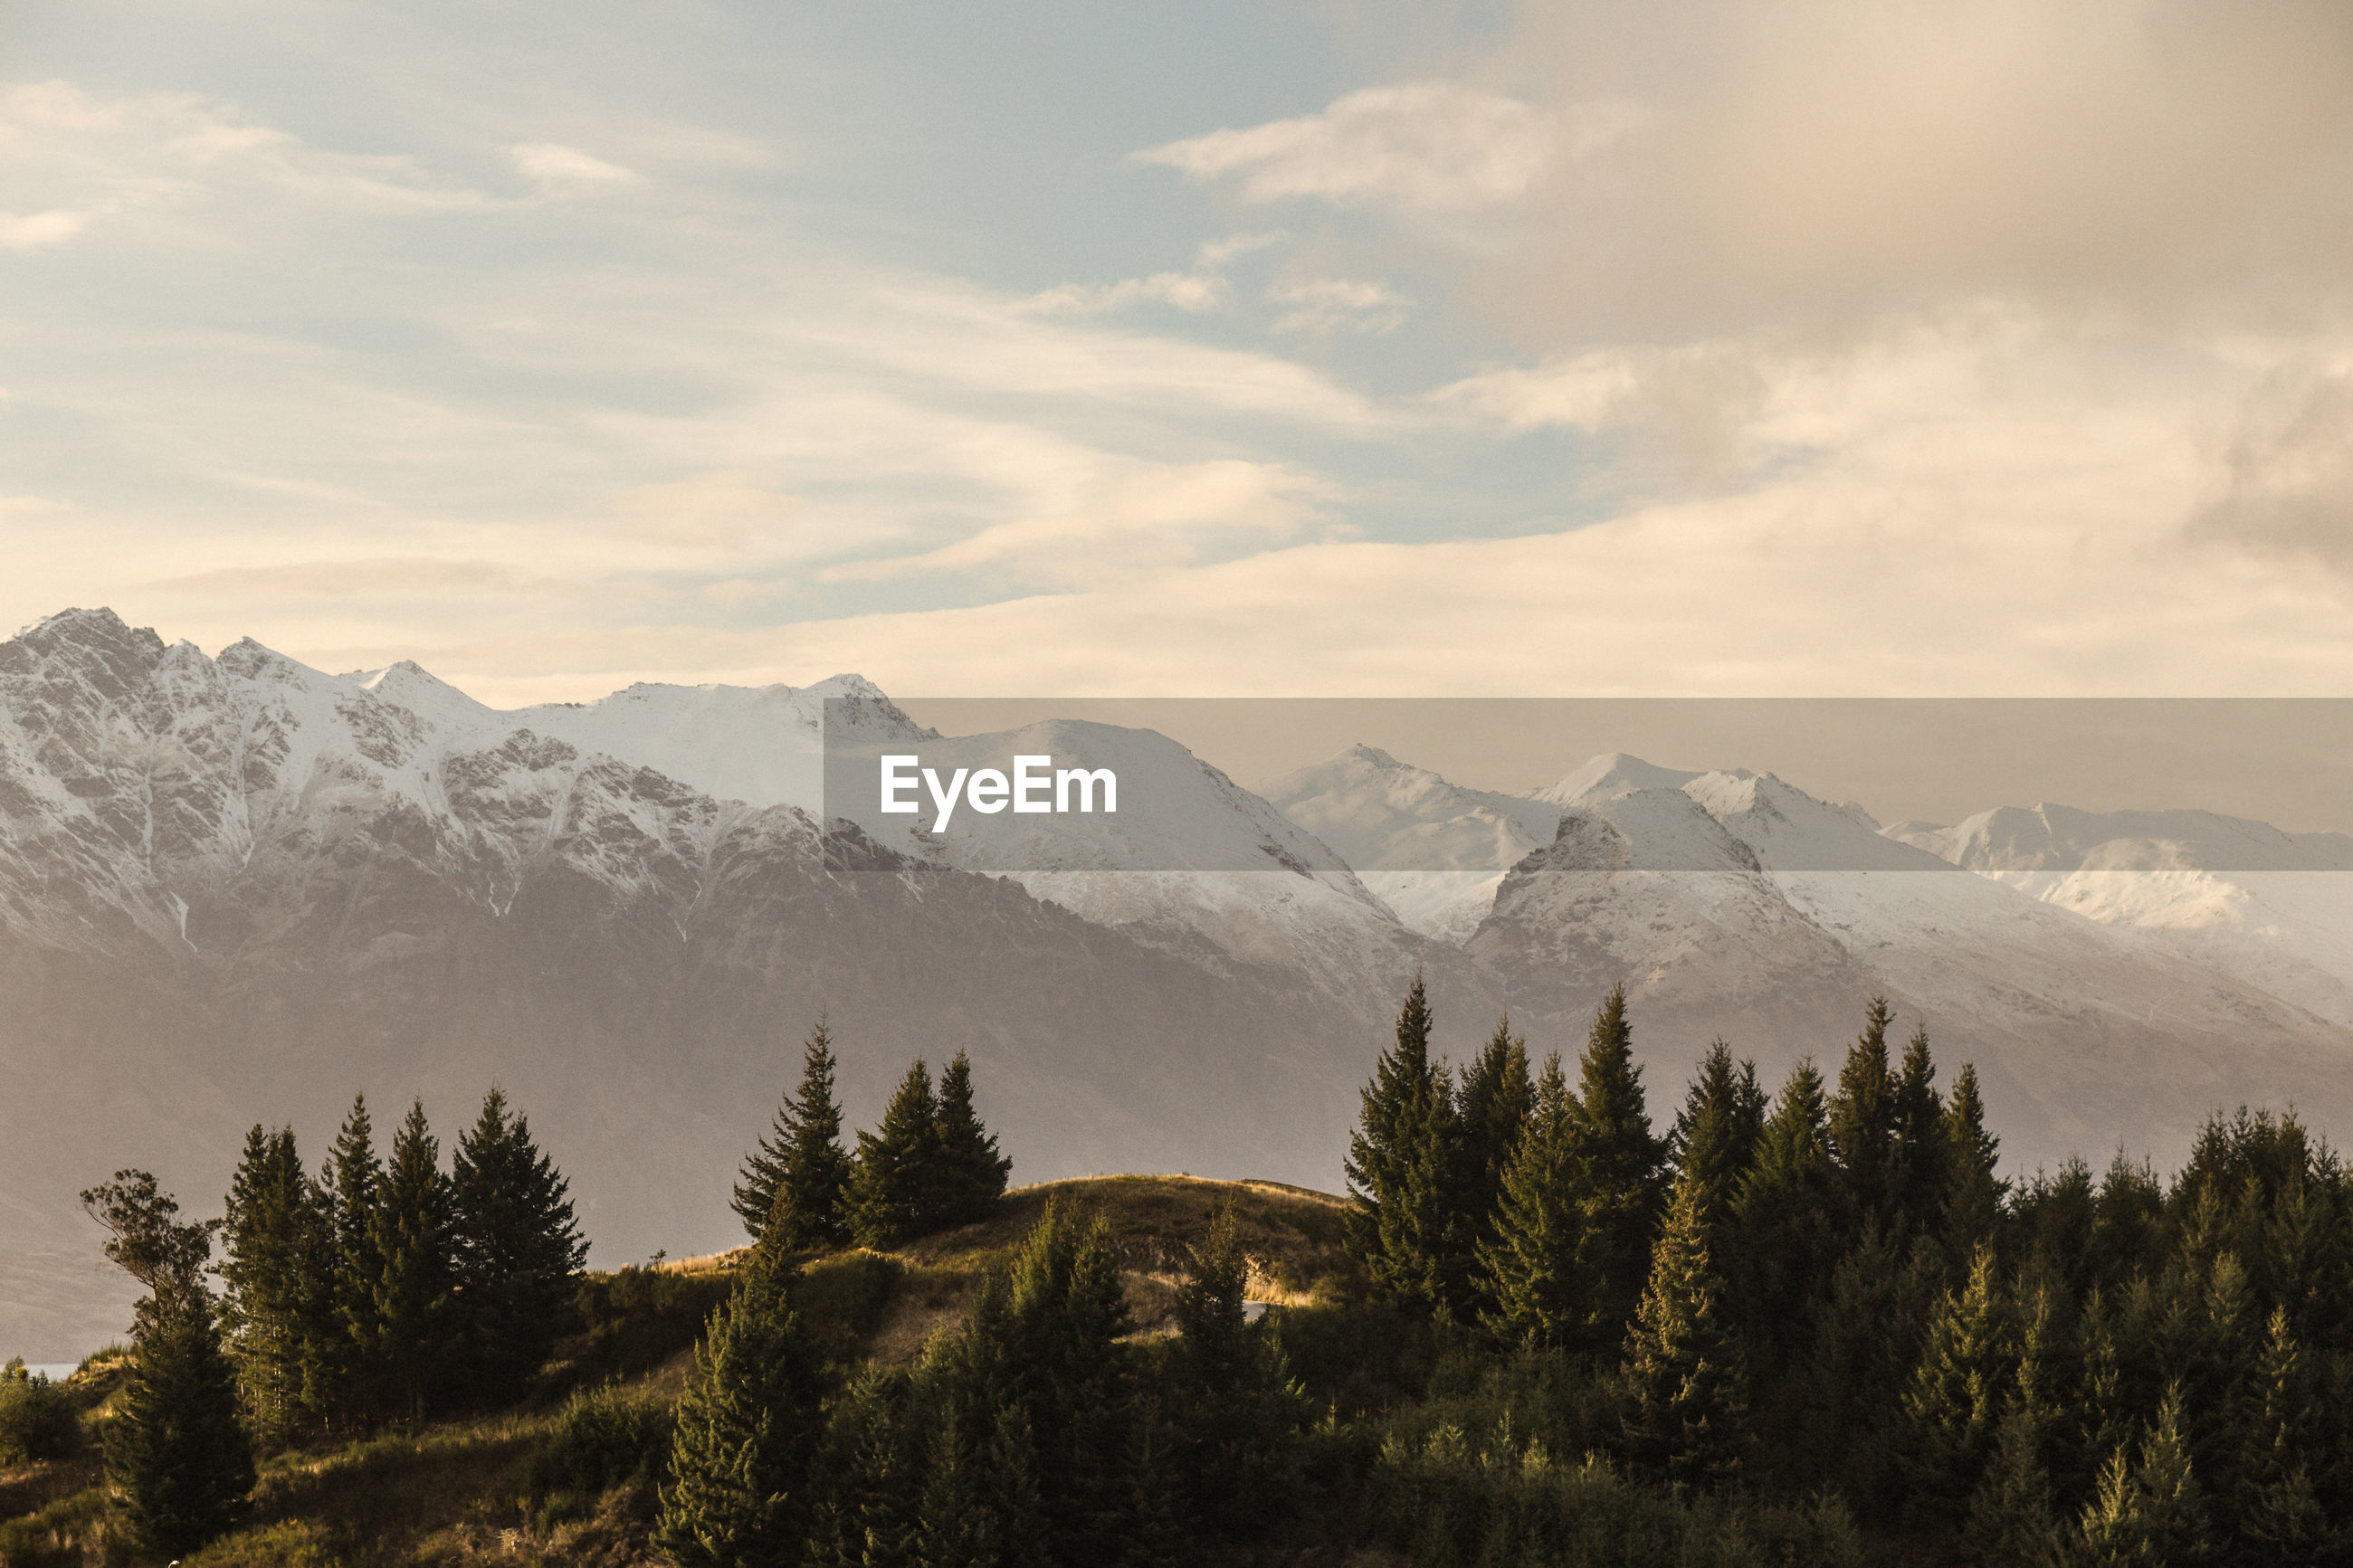 Trees against snowcapped mountains during sunset